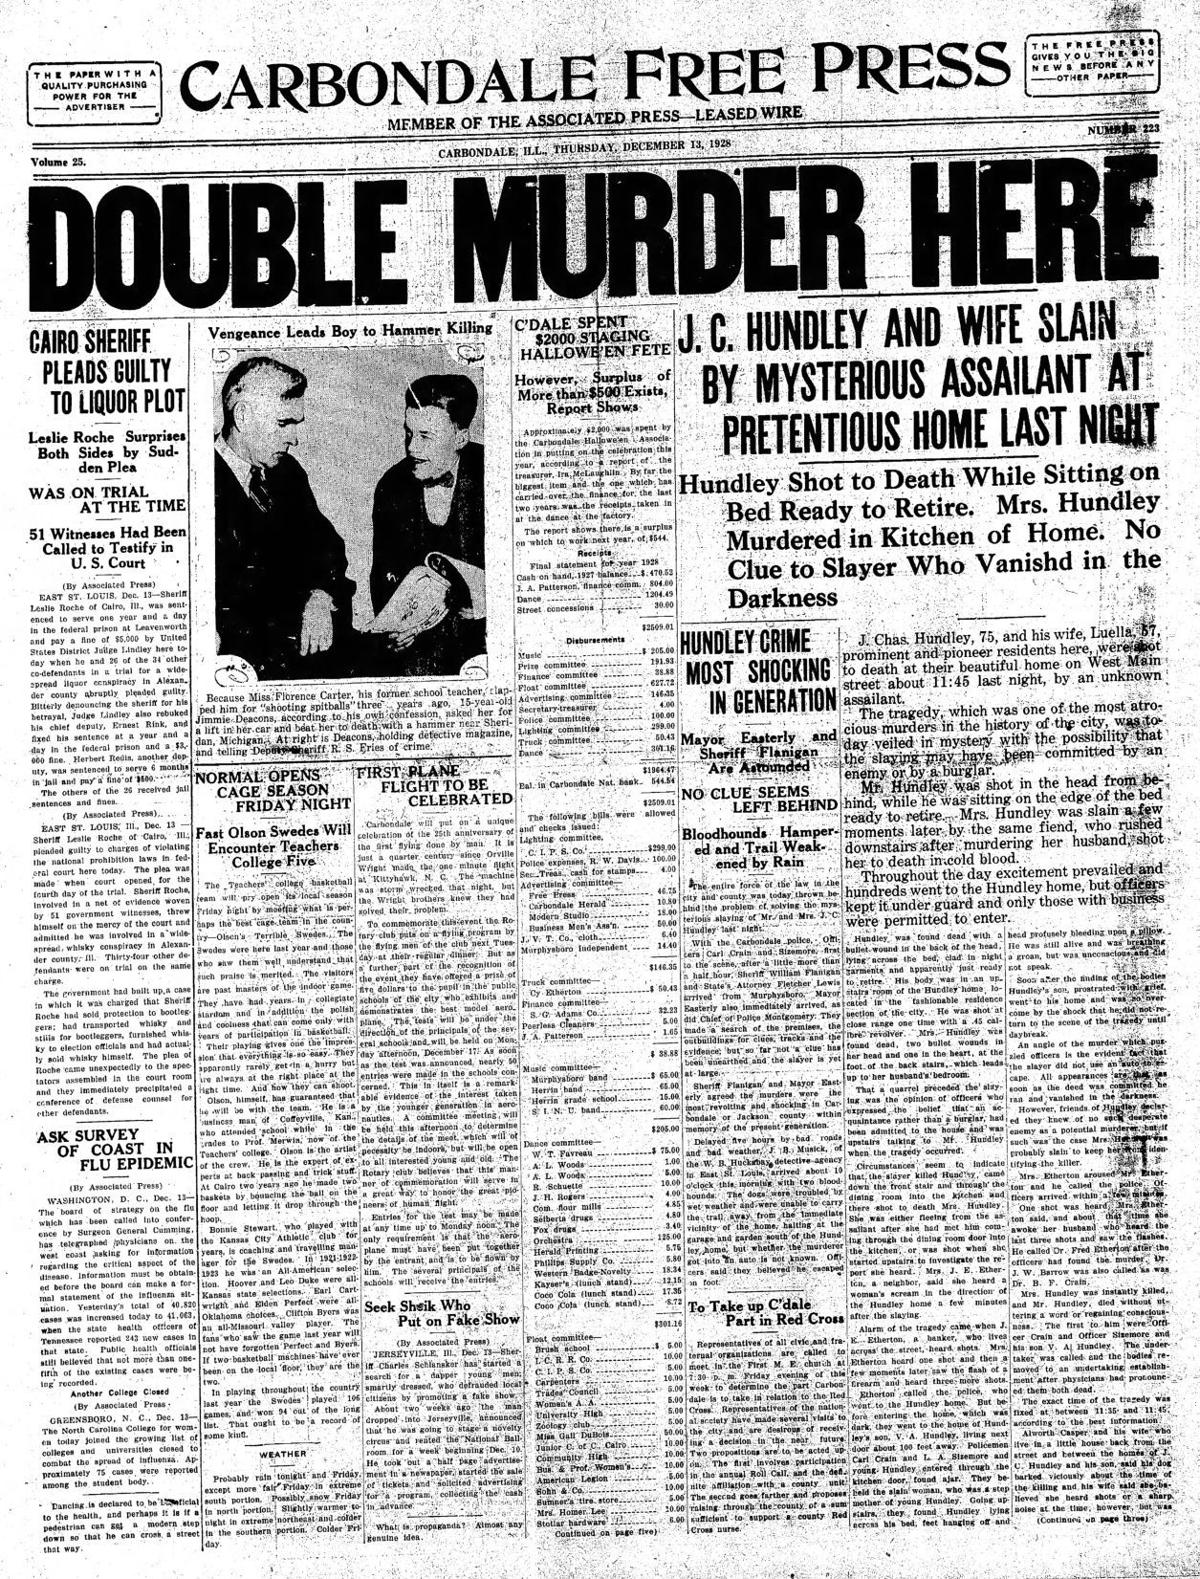 Hundley murder front page